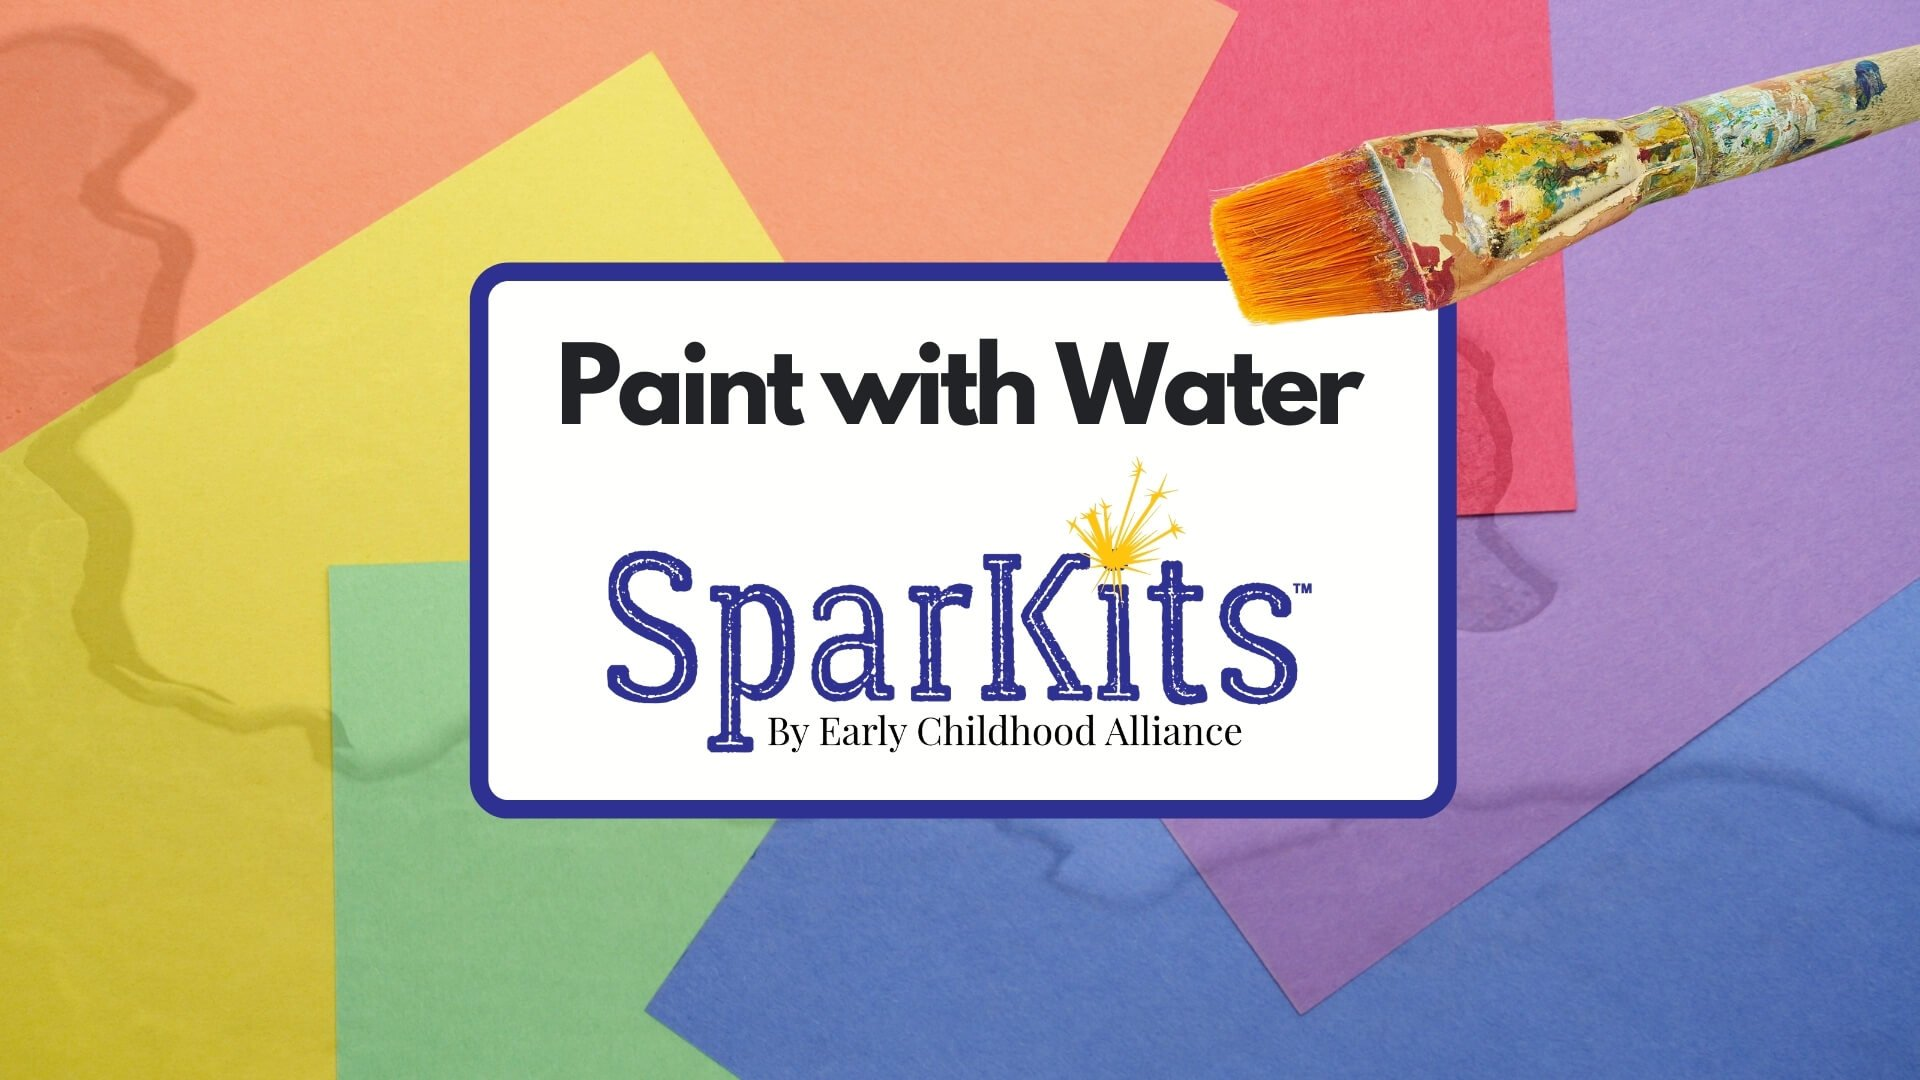 Product Thumbnail - Paint with Water